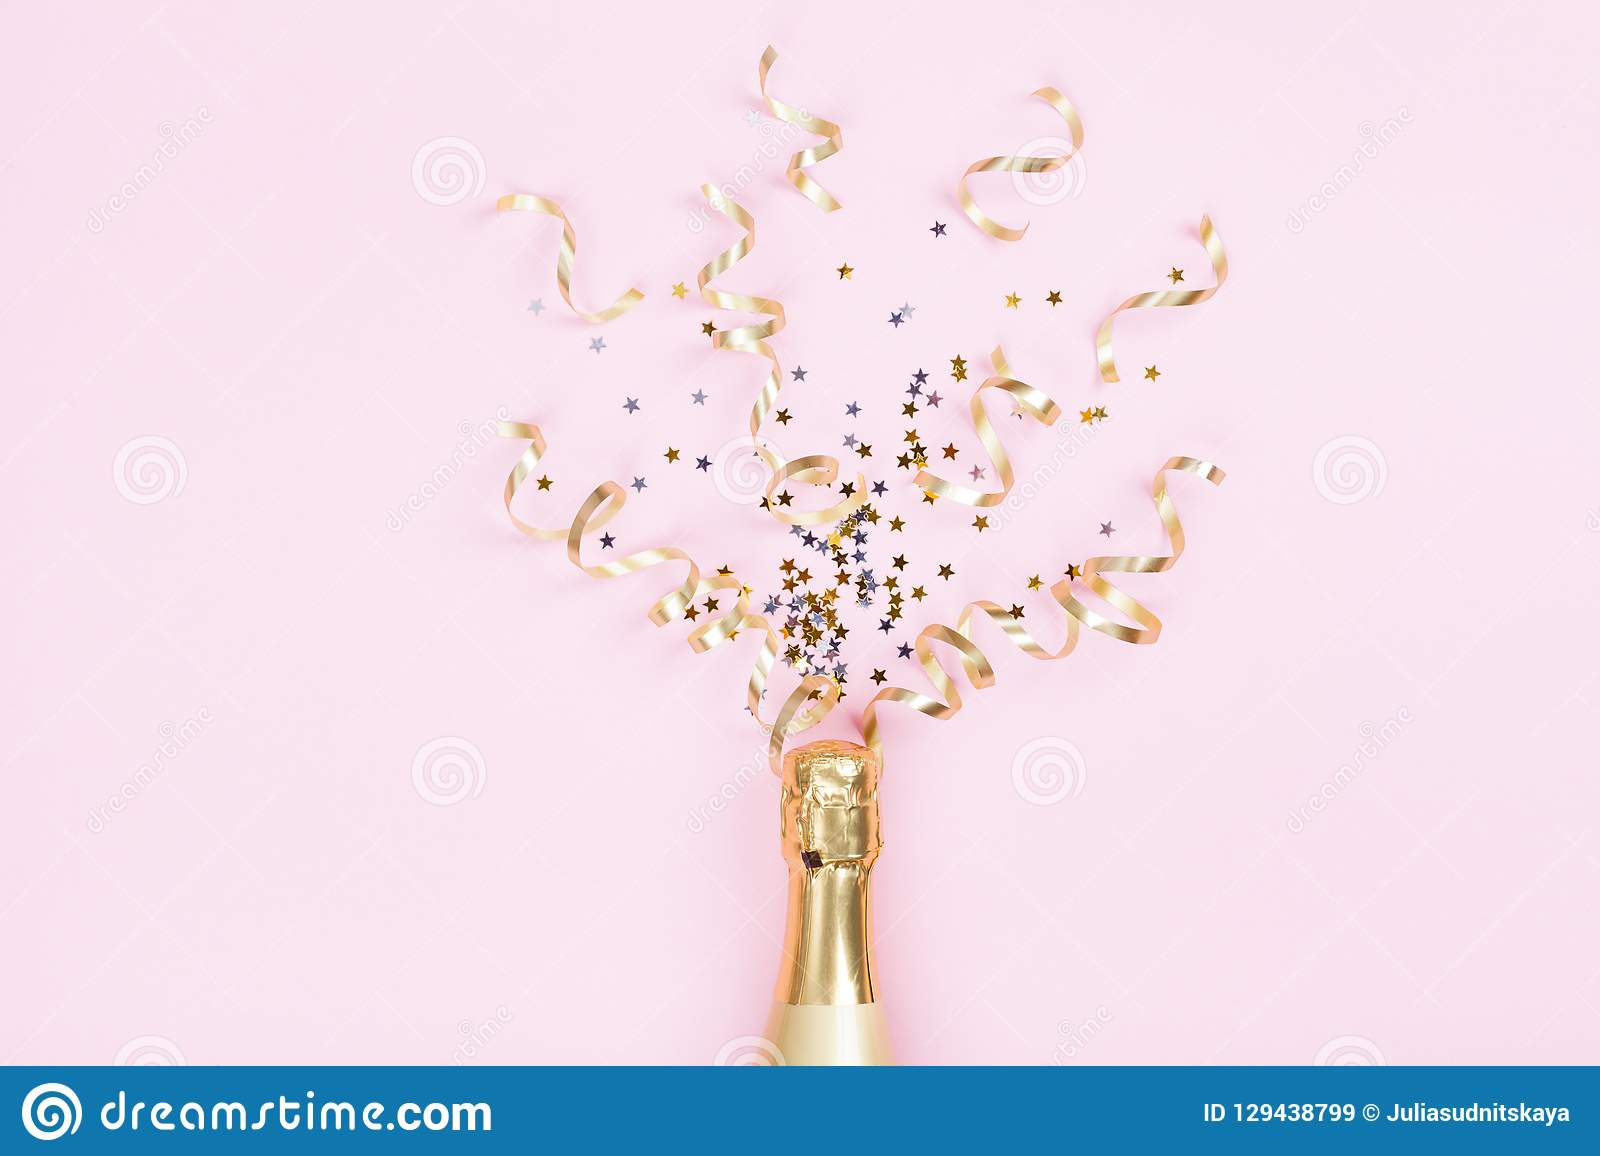 Champagne bottle with confetti stars and party streamers on pink background. Christmas, birthday or wedding concept. Flat lay.